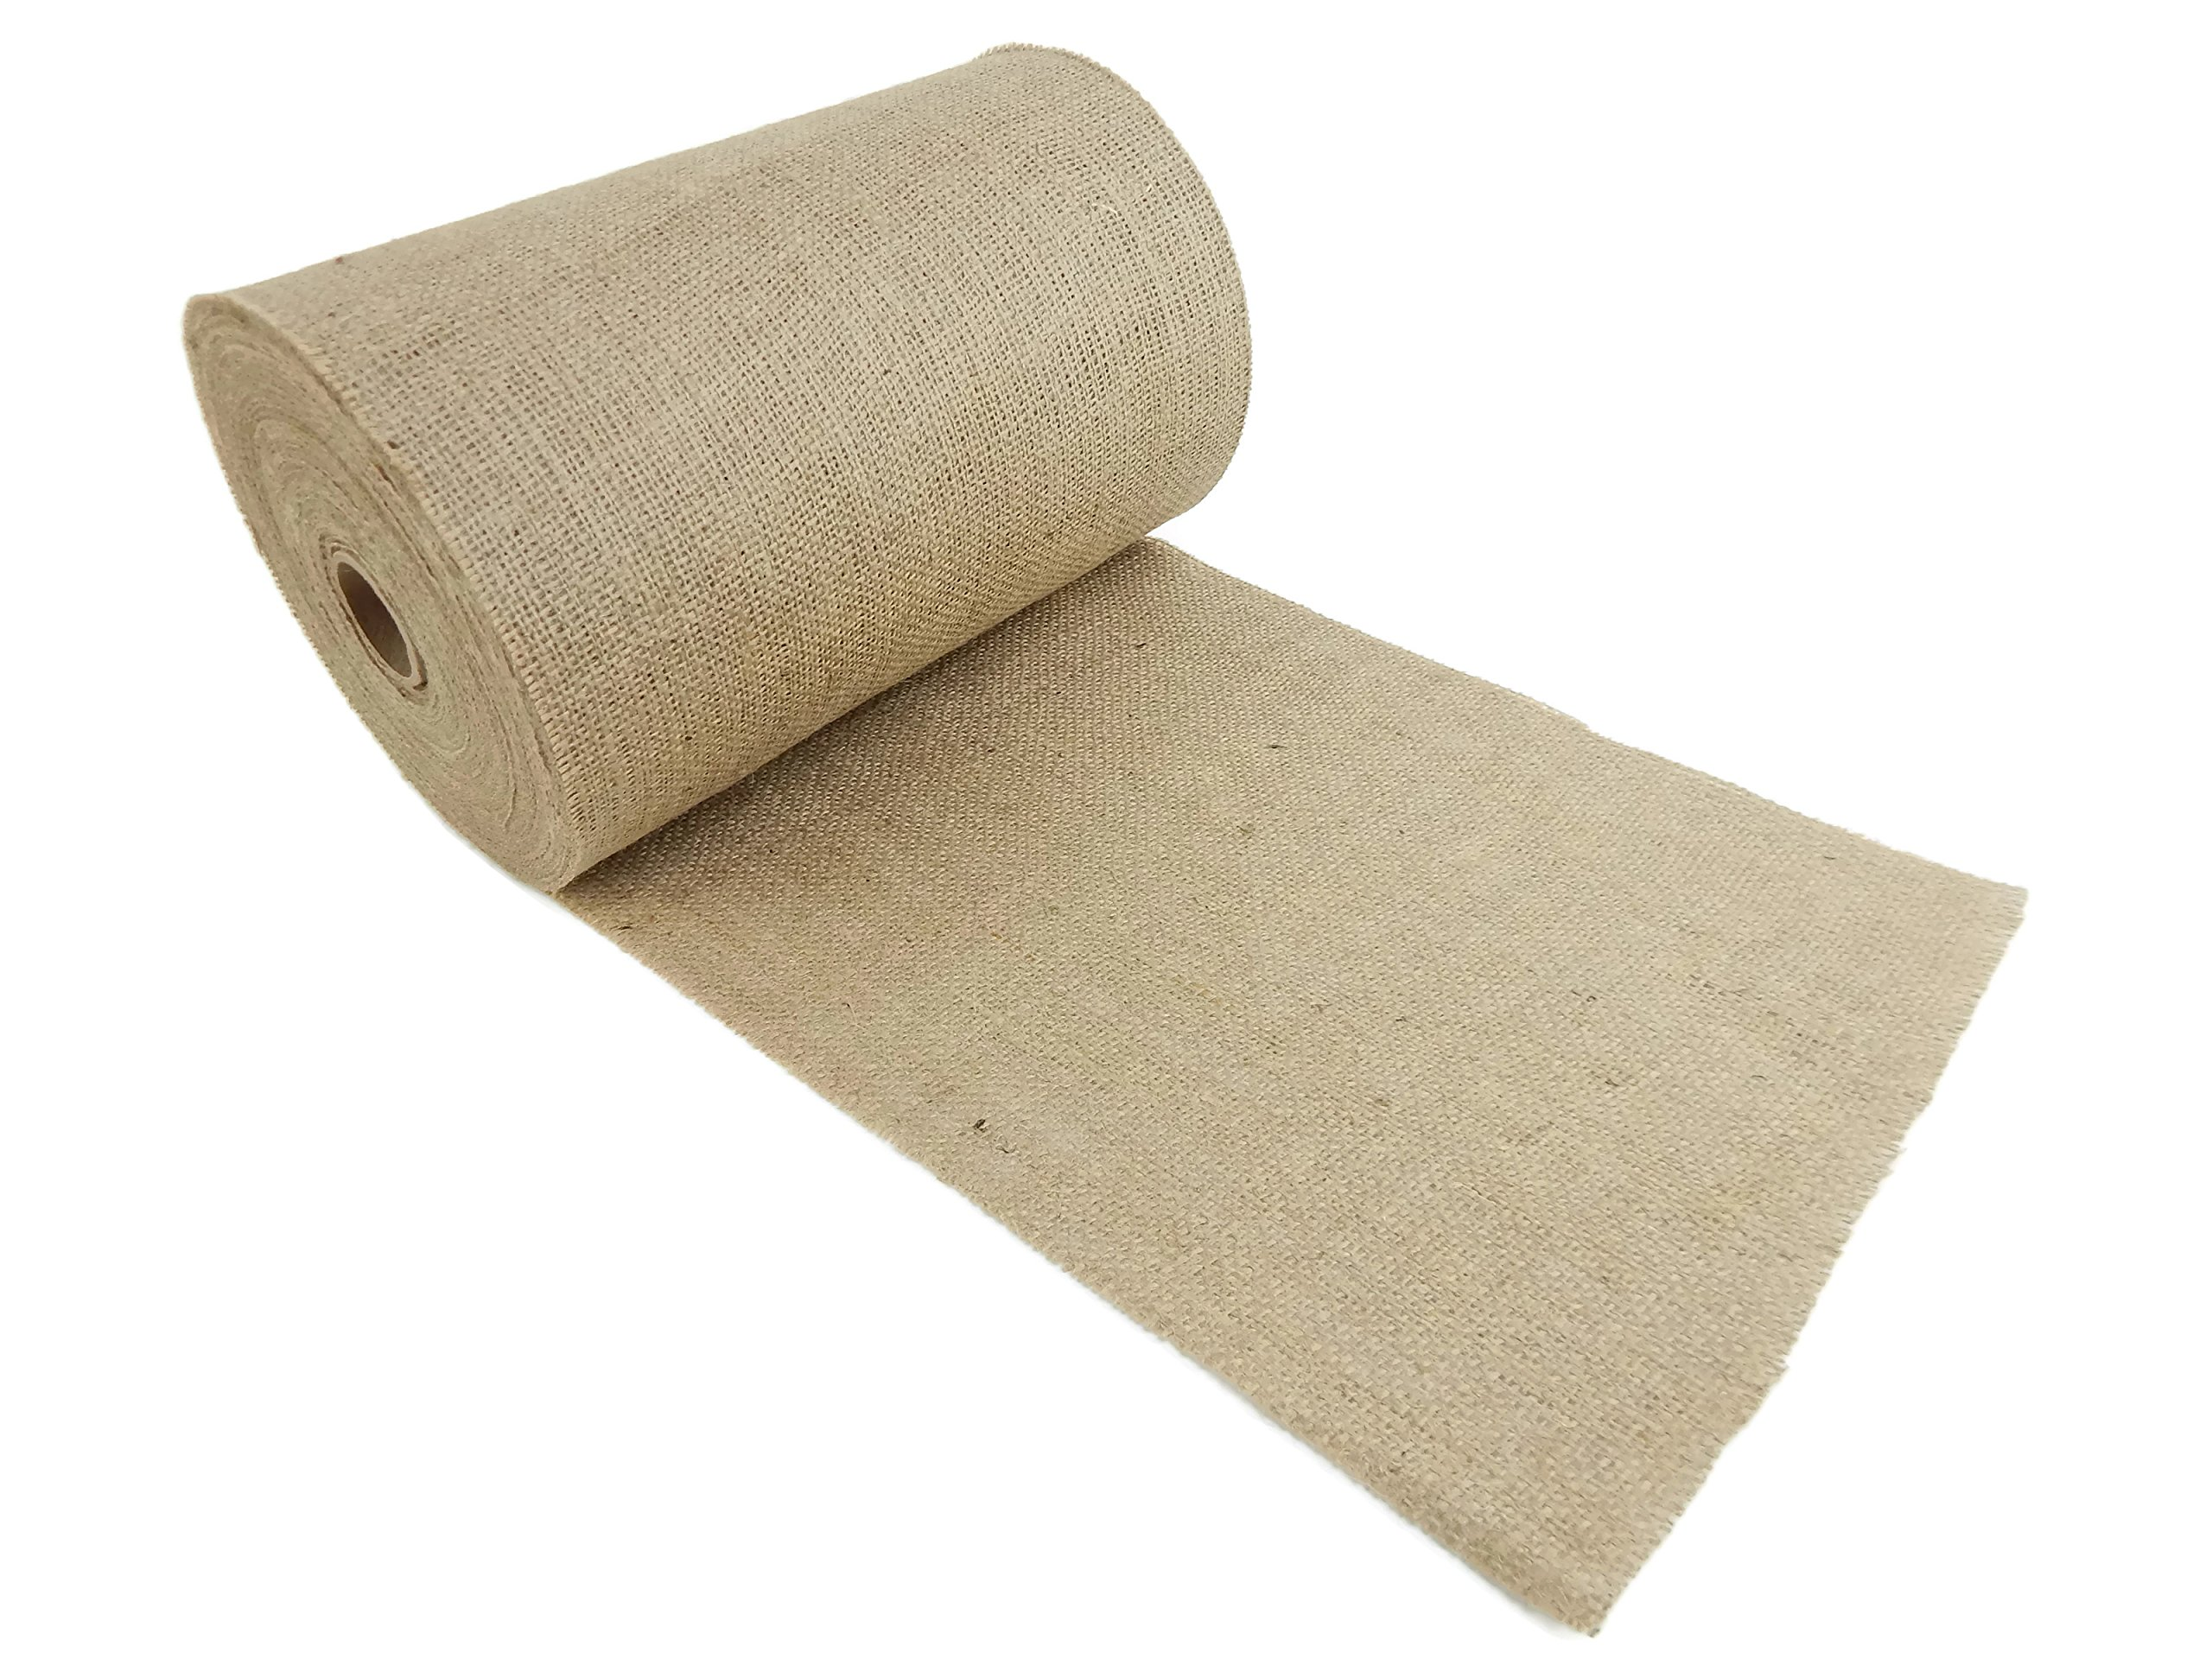 Burlap and Beyond 12'' Natural Burlap Roll - 50 Yards Eco-Friendly Jute Burlap Fabric Unfinished Edges 12 Inch by Burlap and Beyond (Image #2)